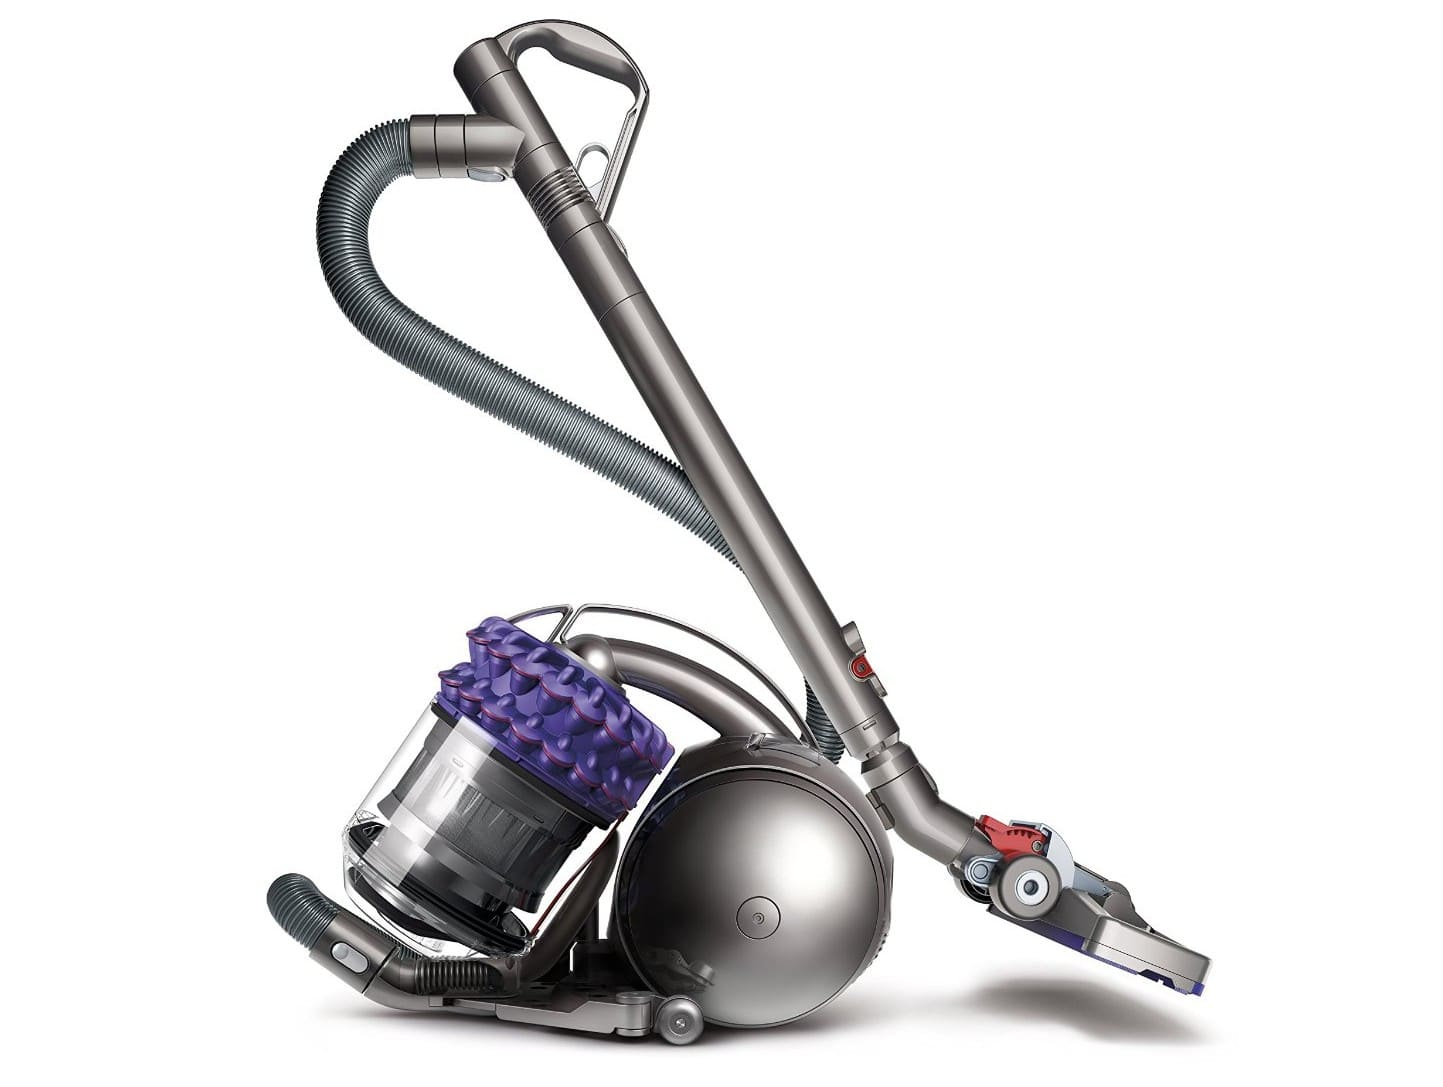 avis aspirateur dyson test comparatif. Black Bedroom Furniture Sets. Home Design Ideas